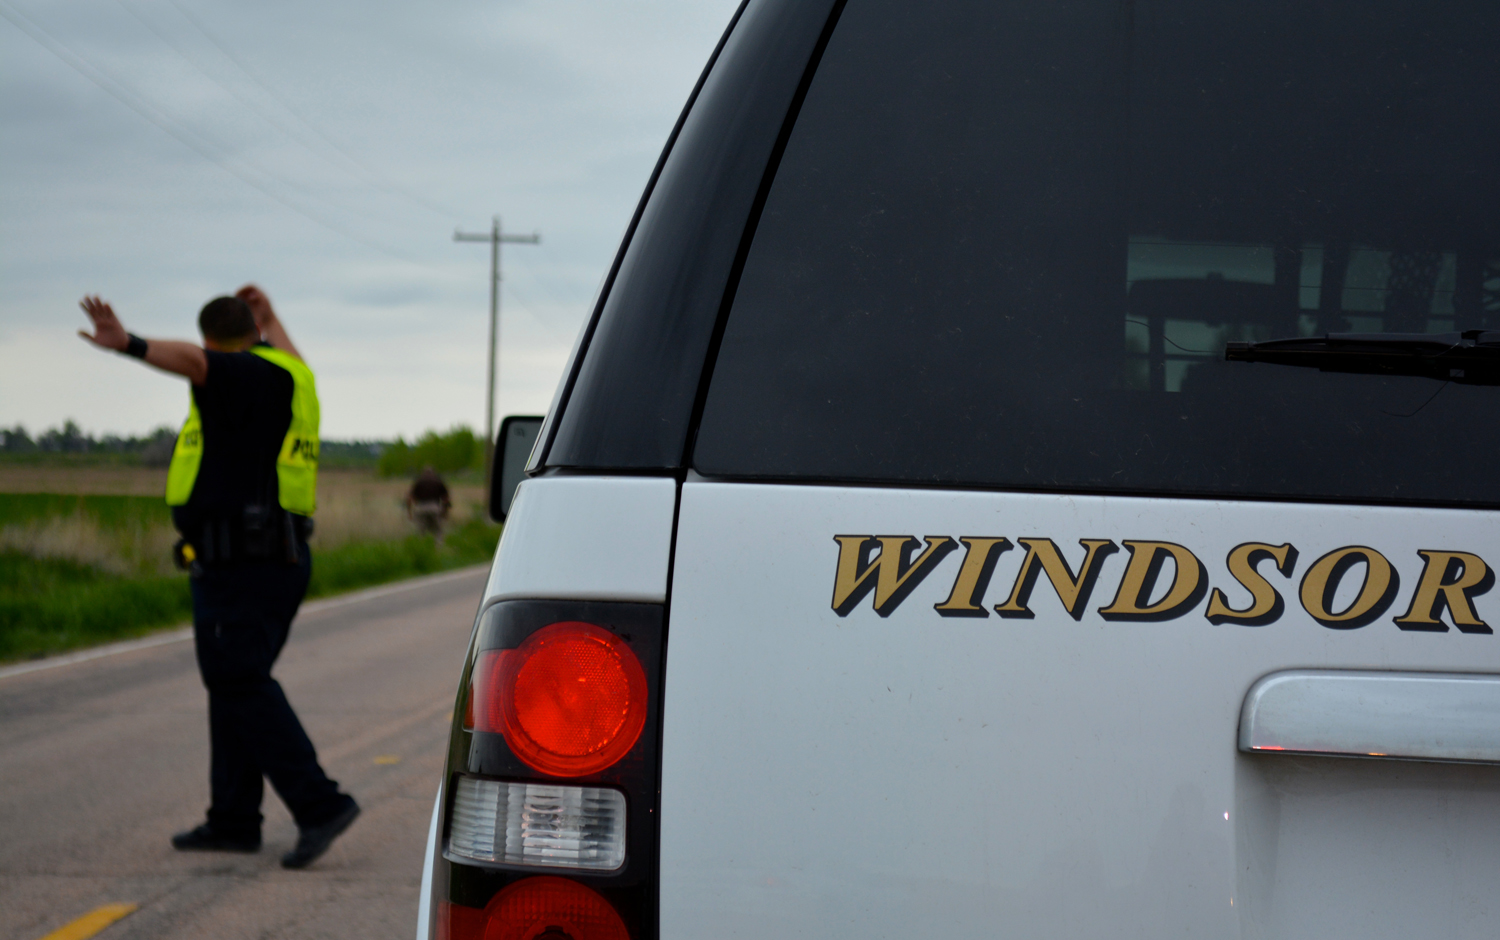 Windsor Police investigate the area where a cyclist was fatally shot in Windsor, Colo.